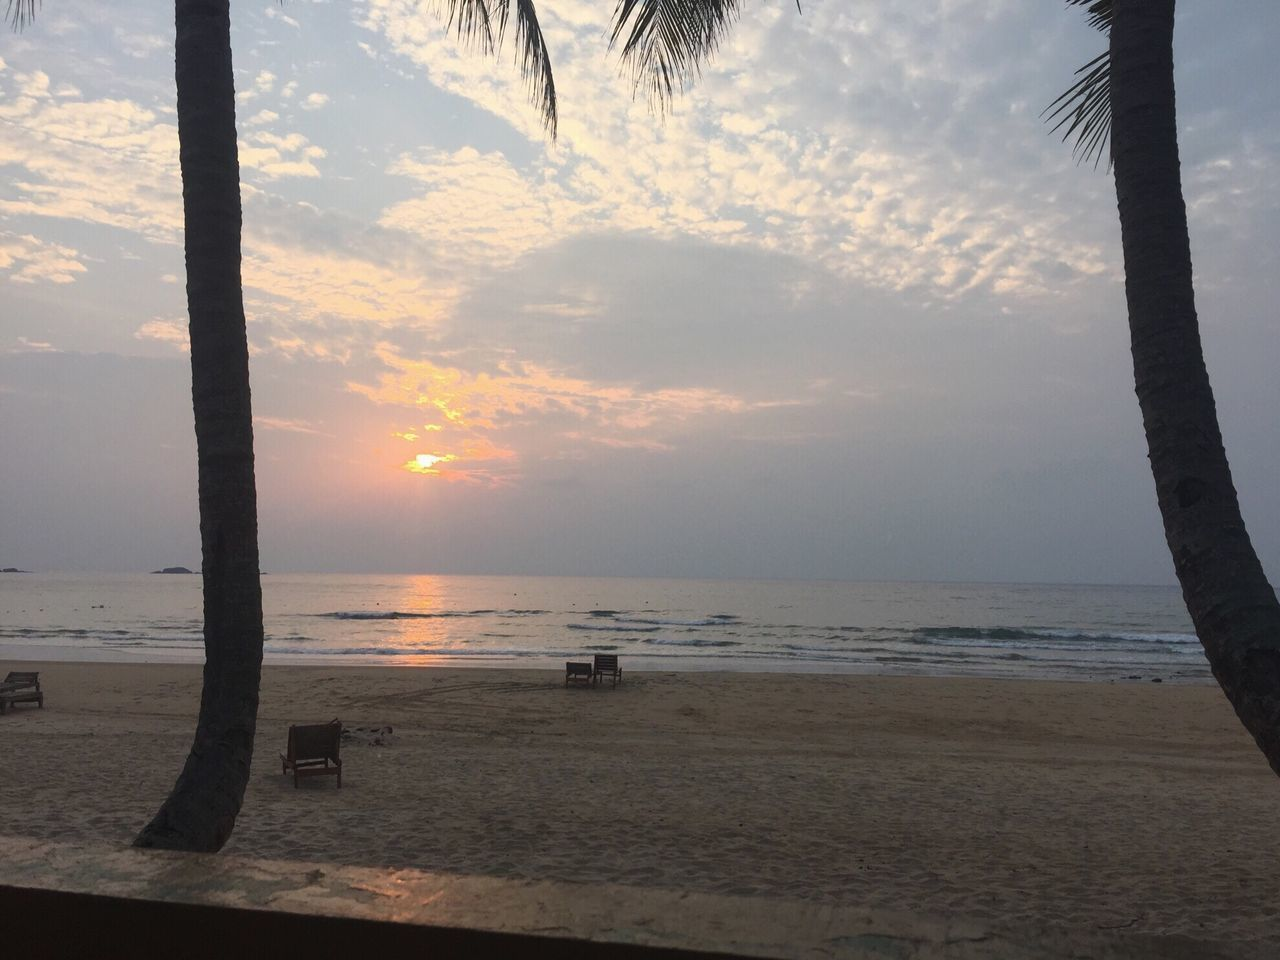 Tioman Tioman Island Island Malaysia Best Beach Places To See Before You Die Beauty In Nature Nature Beach Photography Sunset Sky Sunset On The Beach Sunset Over The Sea Sky And Clouds Sunset And Clouds  Sunset Over The Ocean Ocean Ocean View Tropical Paradise Paradise